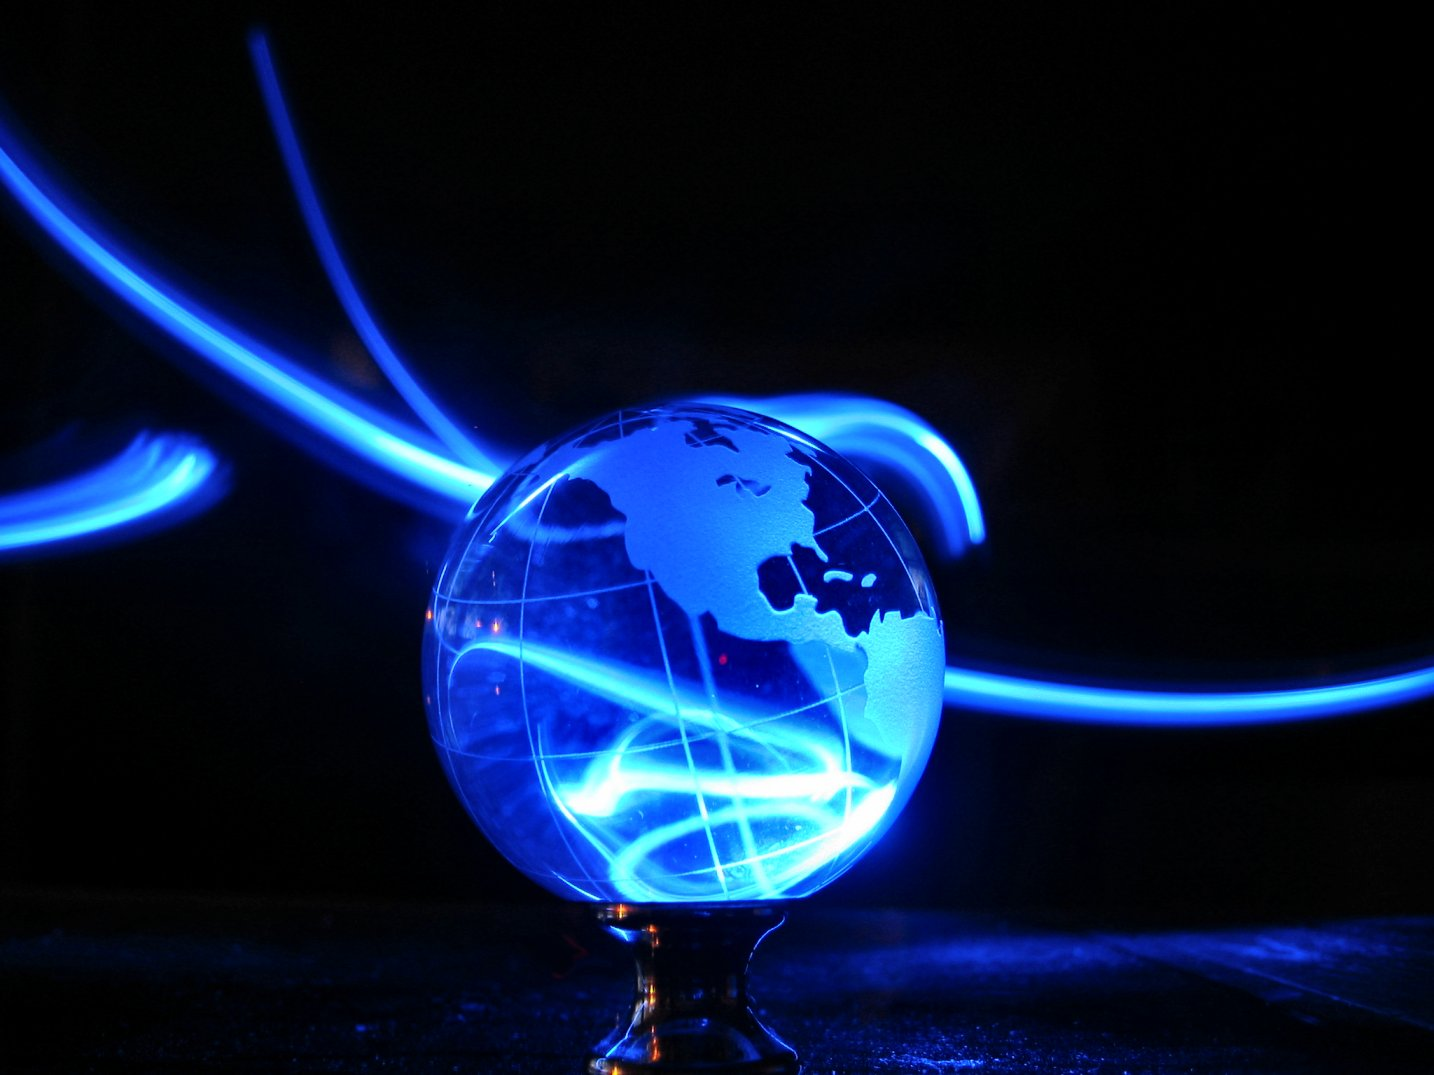 Painting with LED lights - glass Earth Globe with electric bolts - soul-amp.com